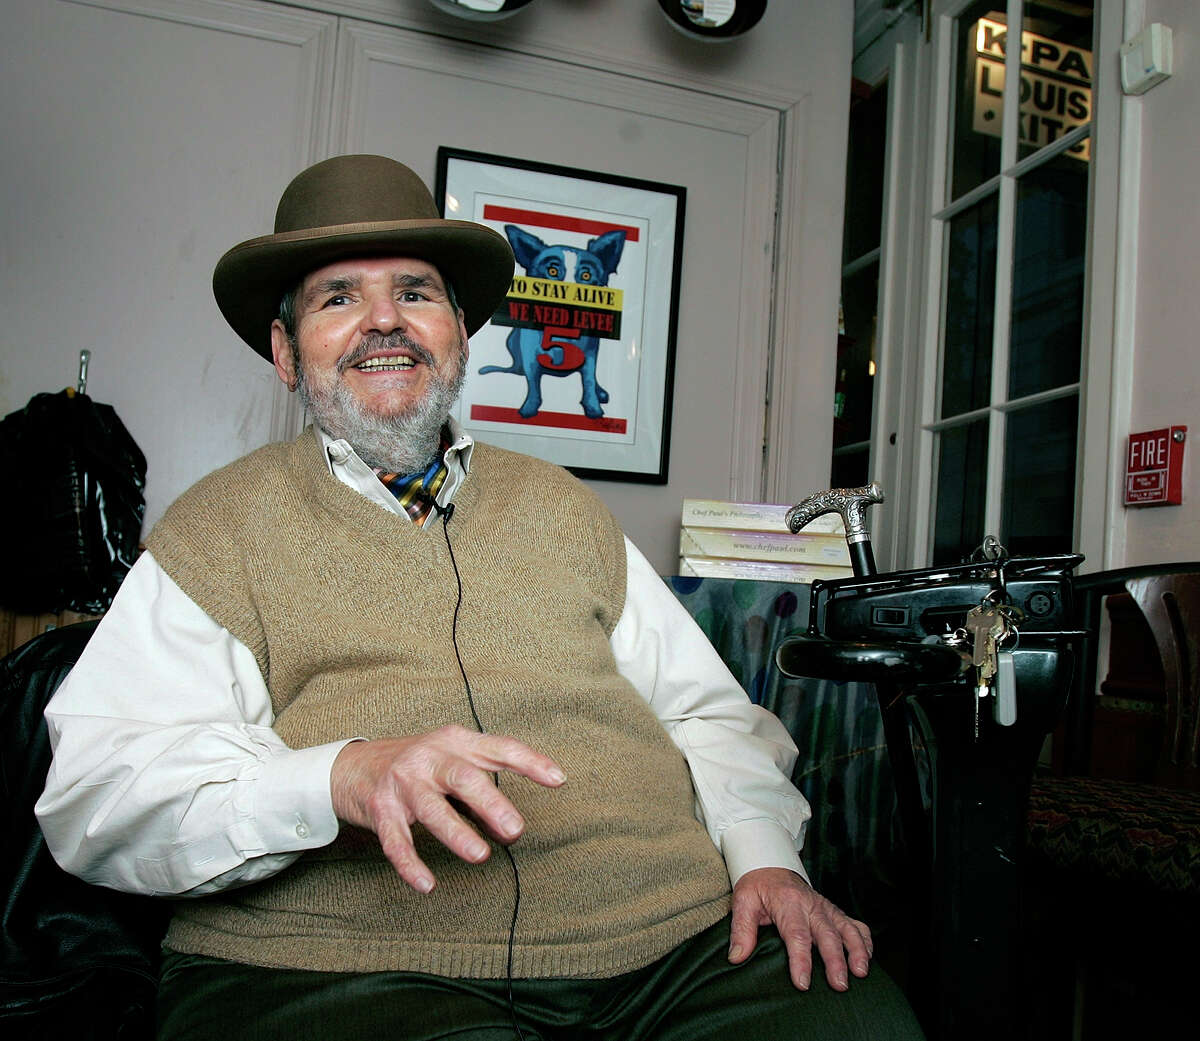 In this Friday, Feb. 2, 2007 file photo, chef Paul Prudhomme gestures during an interview at his French Quarter restaurant, K-Paul's Louisiana Kitchen, in New Orleans. Prudhomme, the Cajun who popularized spicy Louisiana cuisine and became one of the first American restaurant chefs to achieve worldwide fame, died Thursday, Oct. 7, 2015. He was 75.